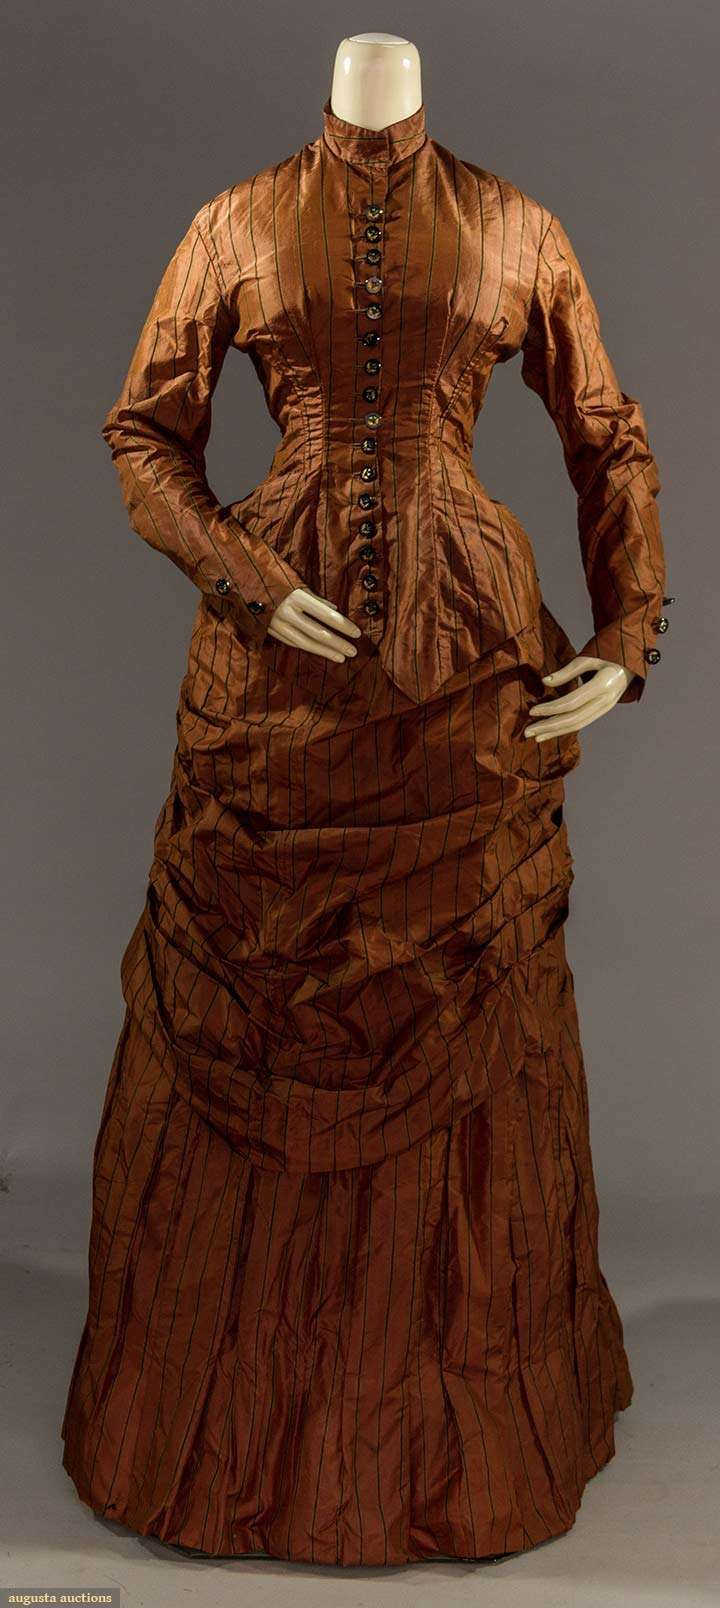 Day Dress (image 1) | late 1870s | silk | Augusta Auctions | May 11, 2016/Lot 2141